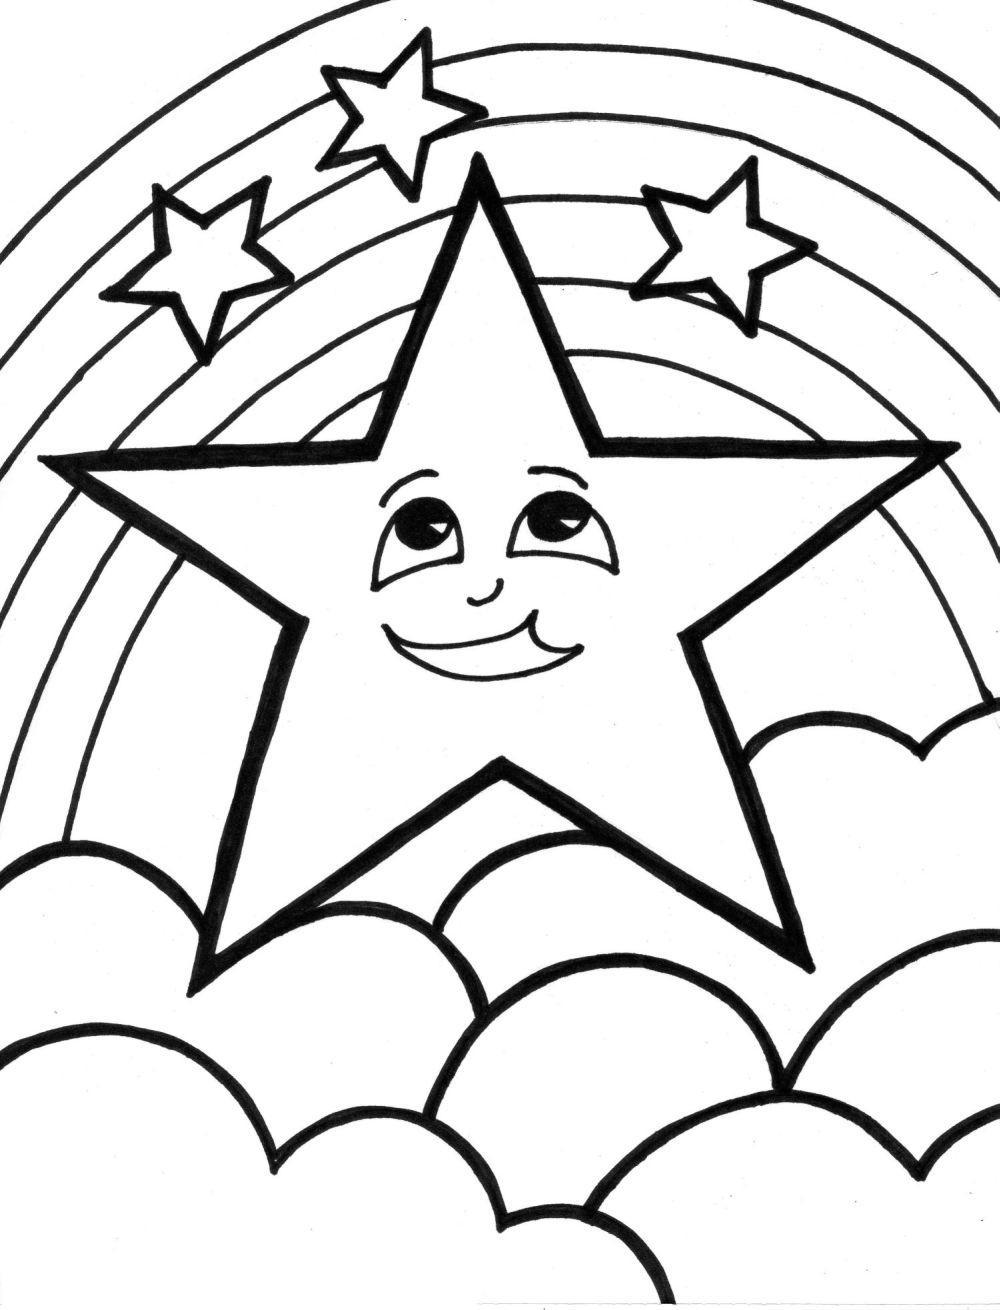 1000x1310 Star Printable Coloring Pages Free Coloring Pages Stars Printable